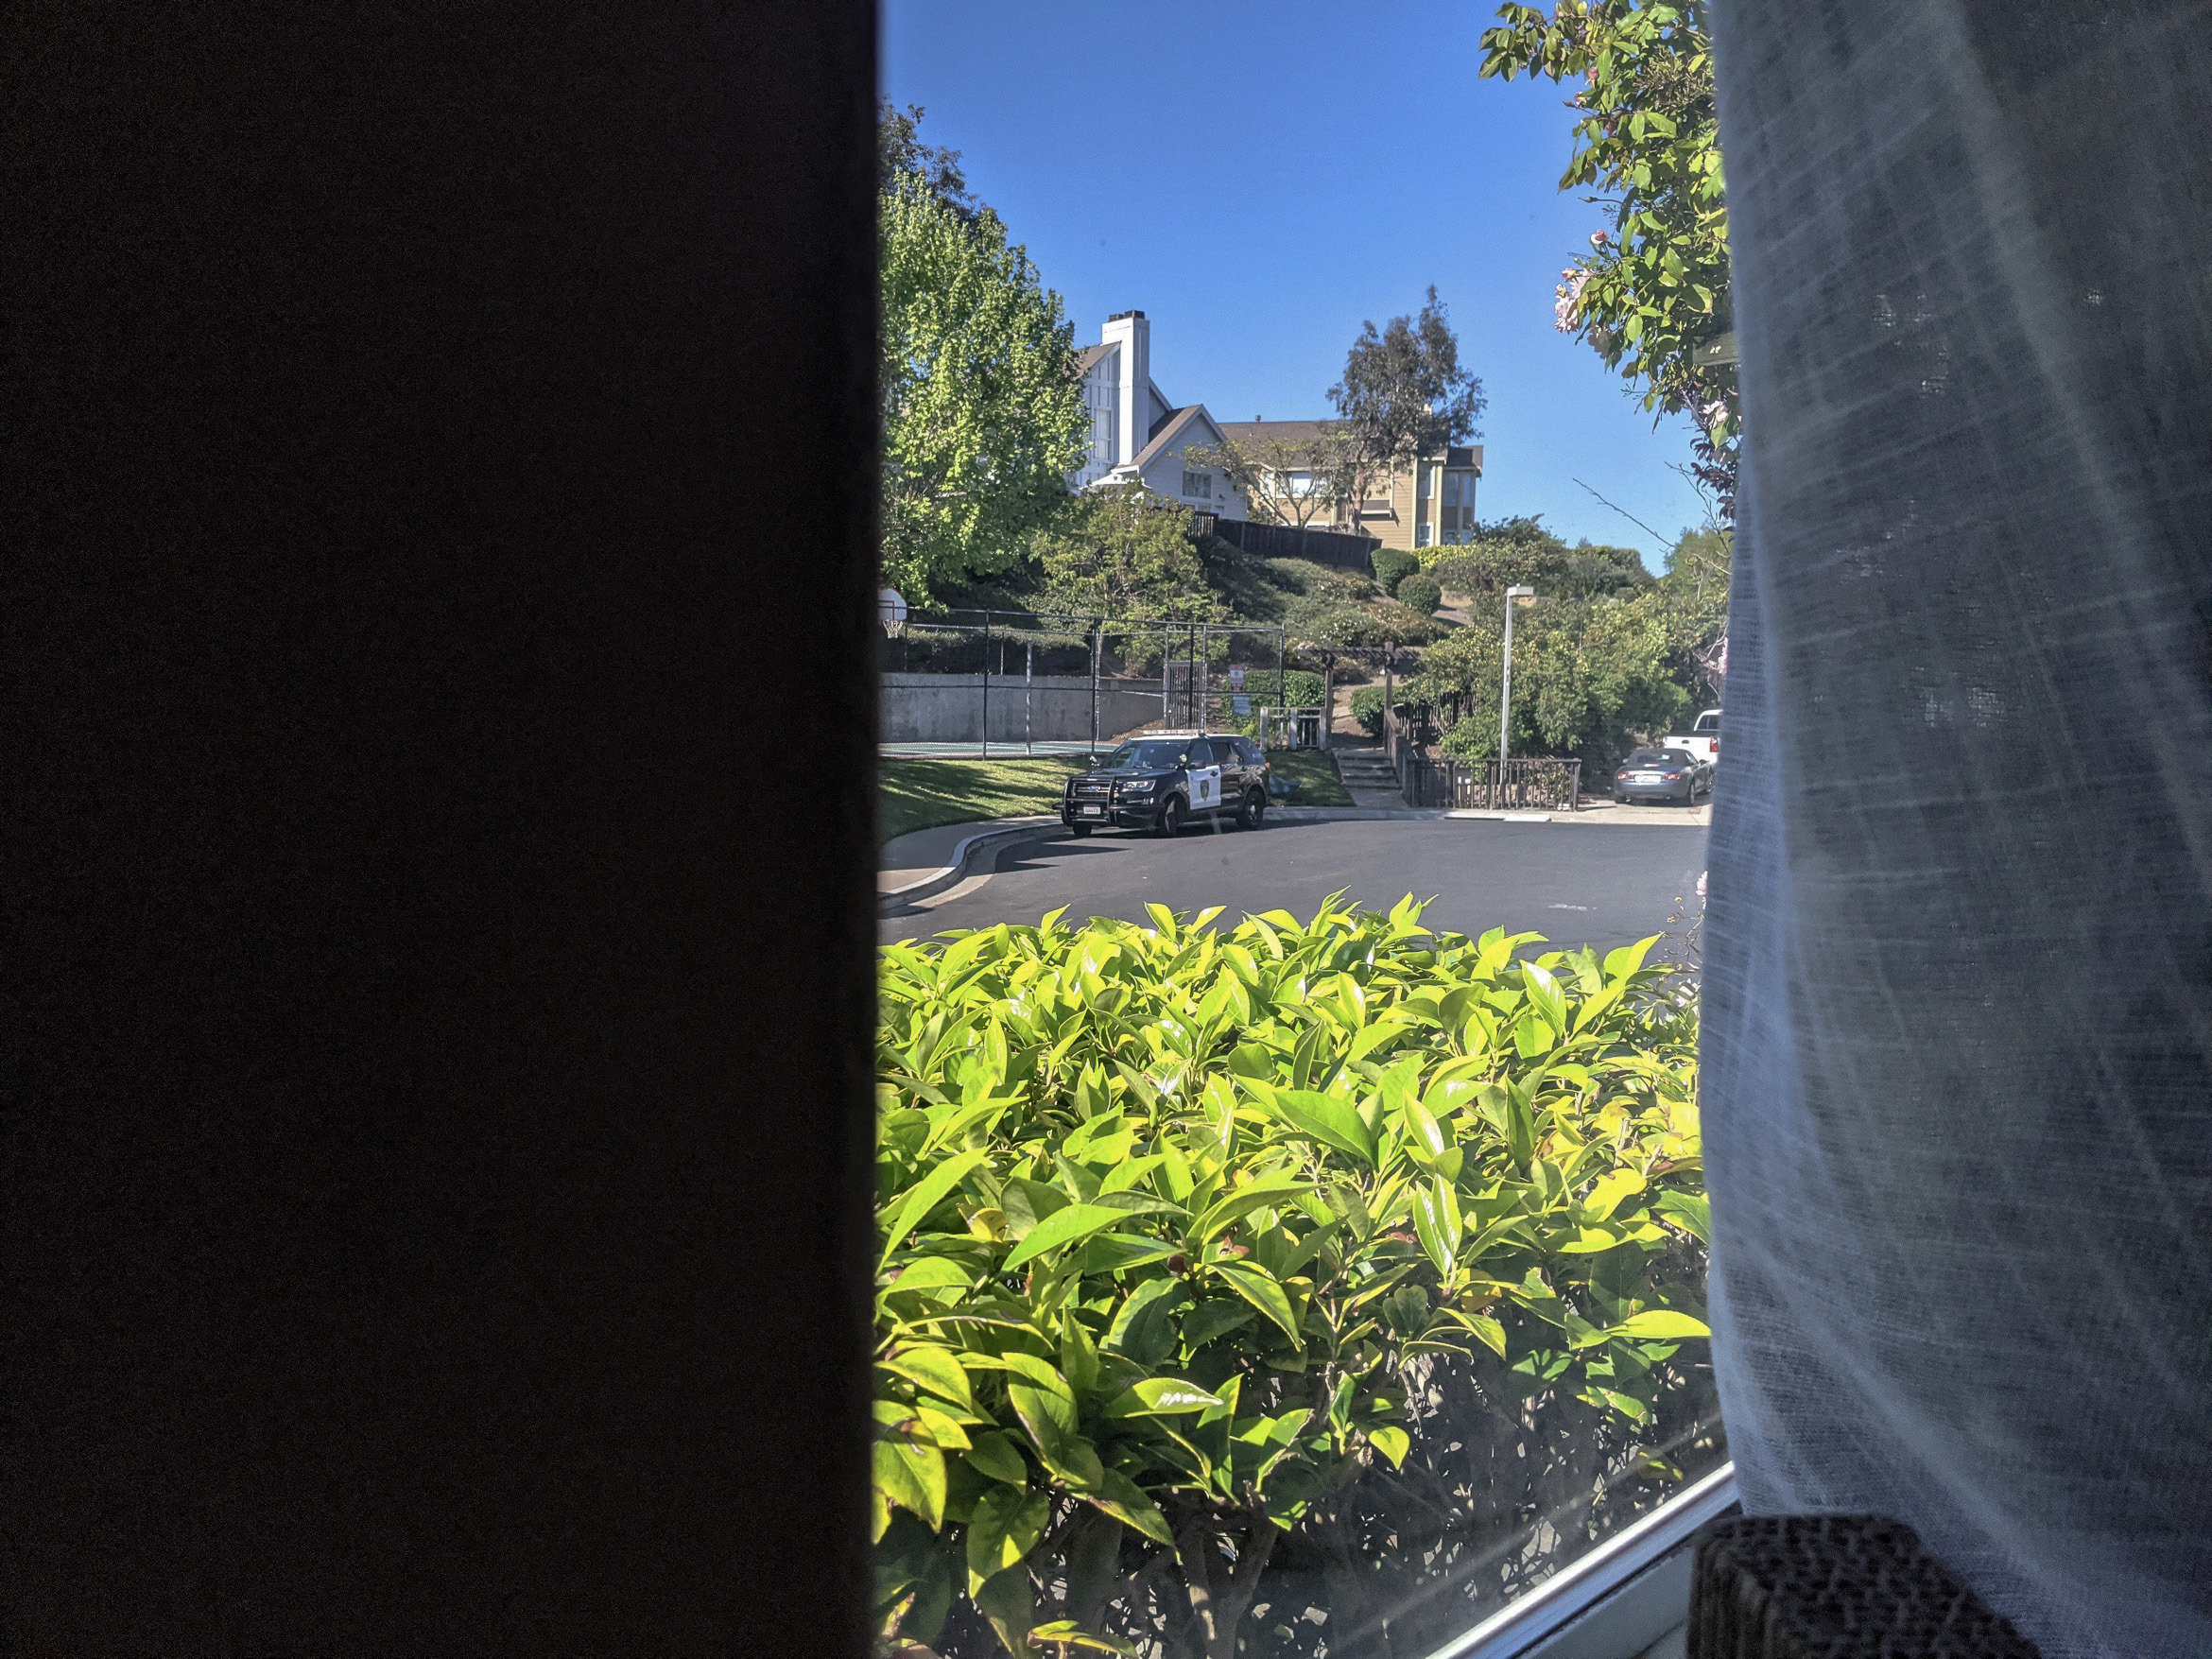 A Vallejo Police Department SUV is seen parked outside fired City Hall employee Slater Matzke's home. The photograph was taken through a window from inside the home.